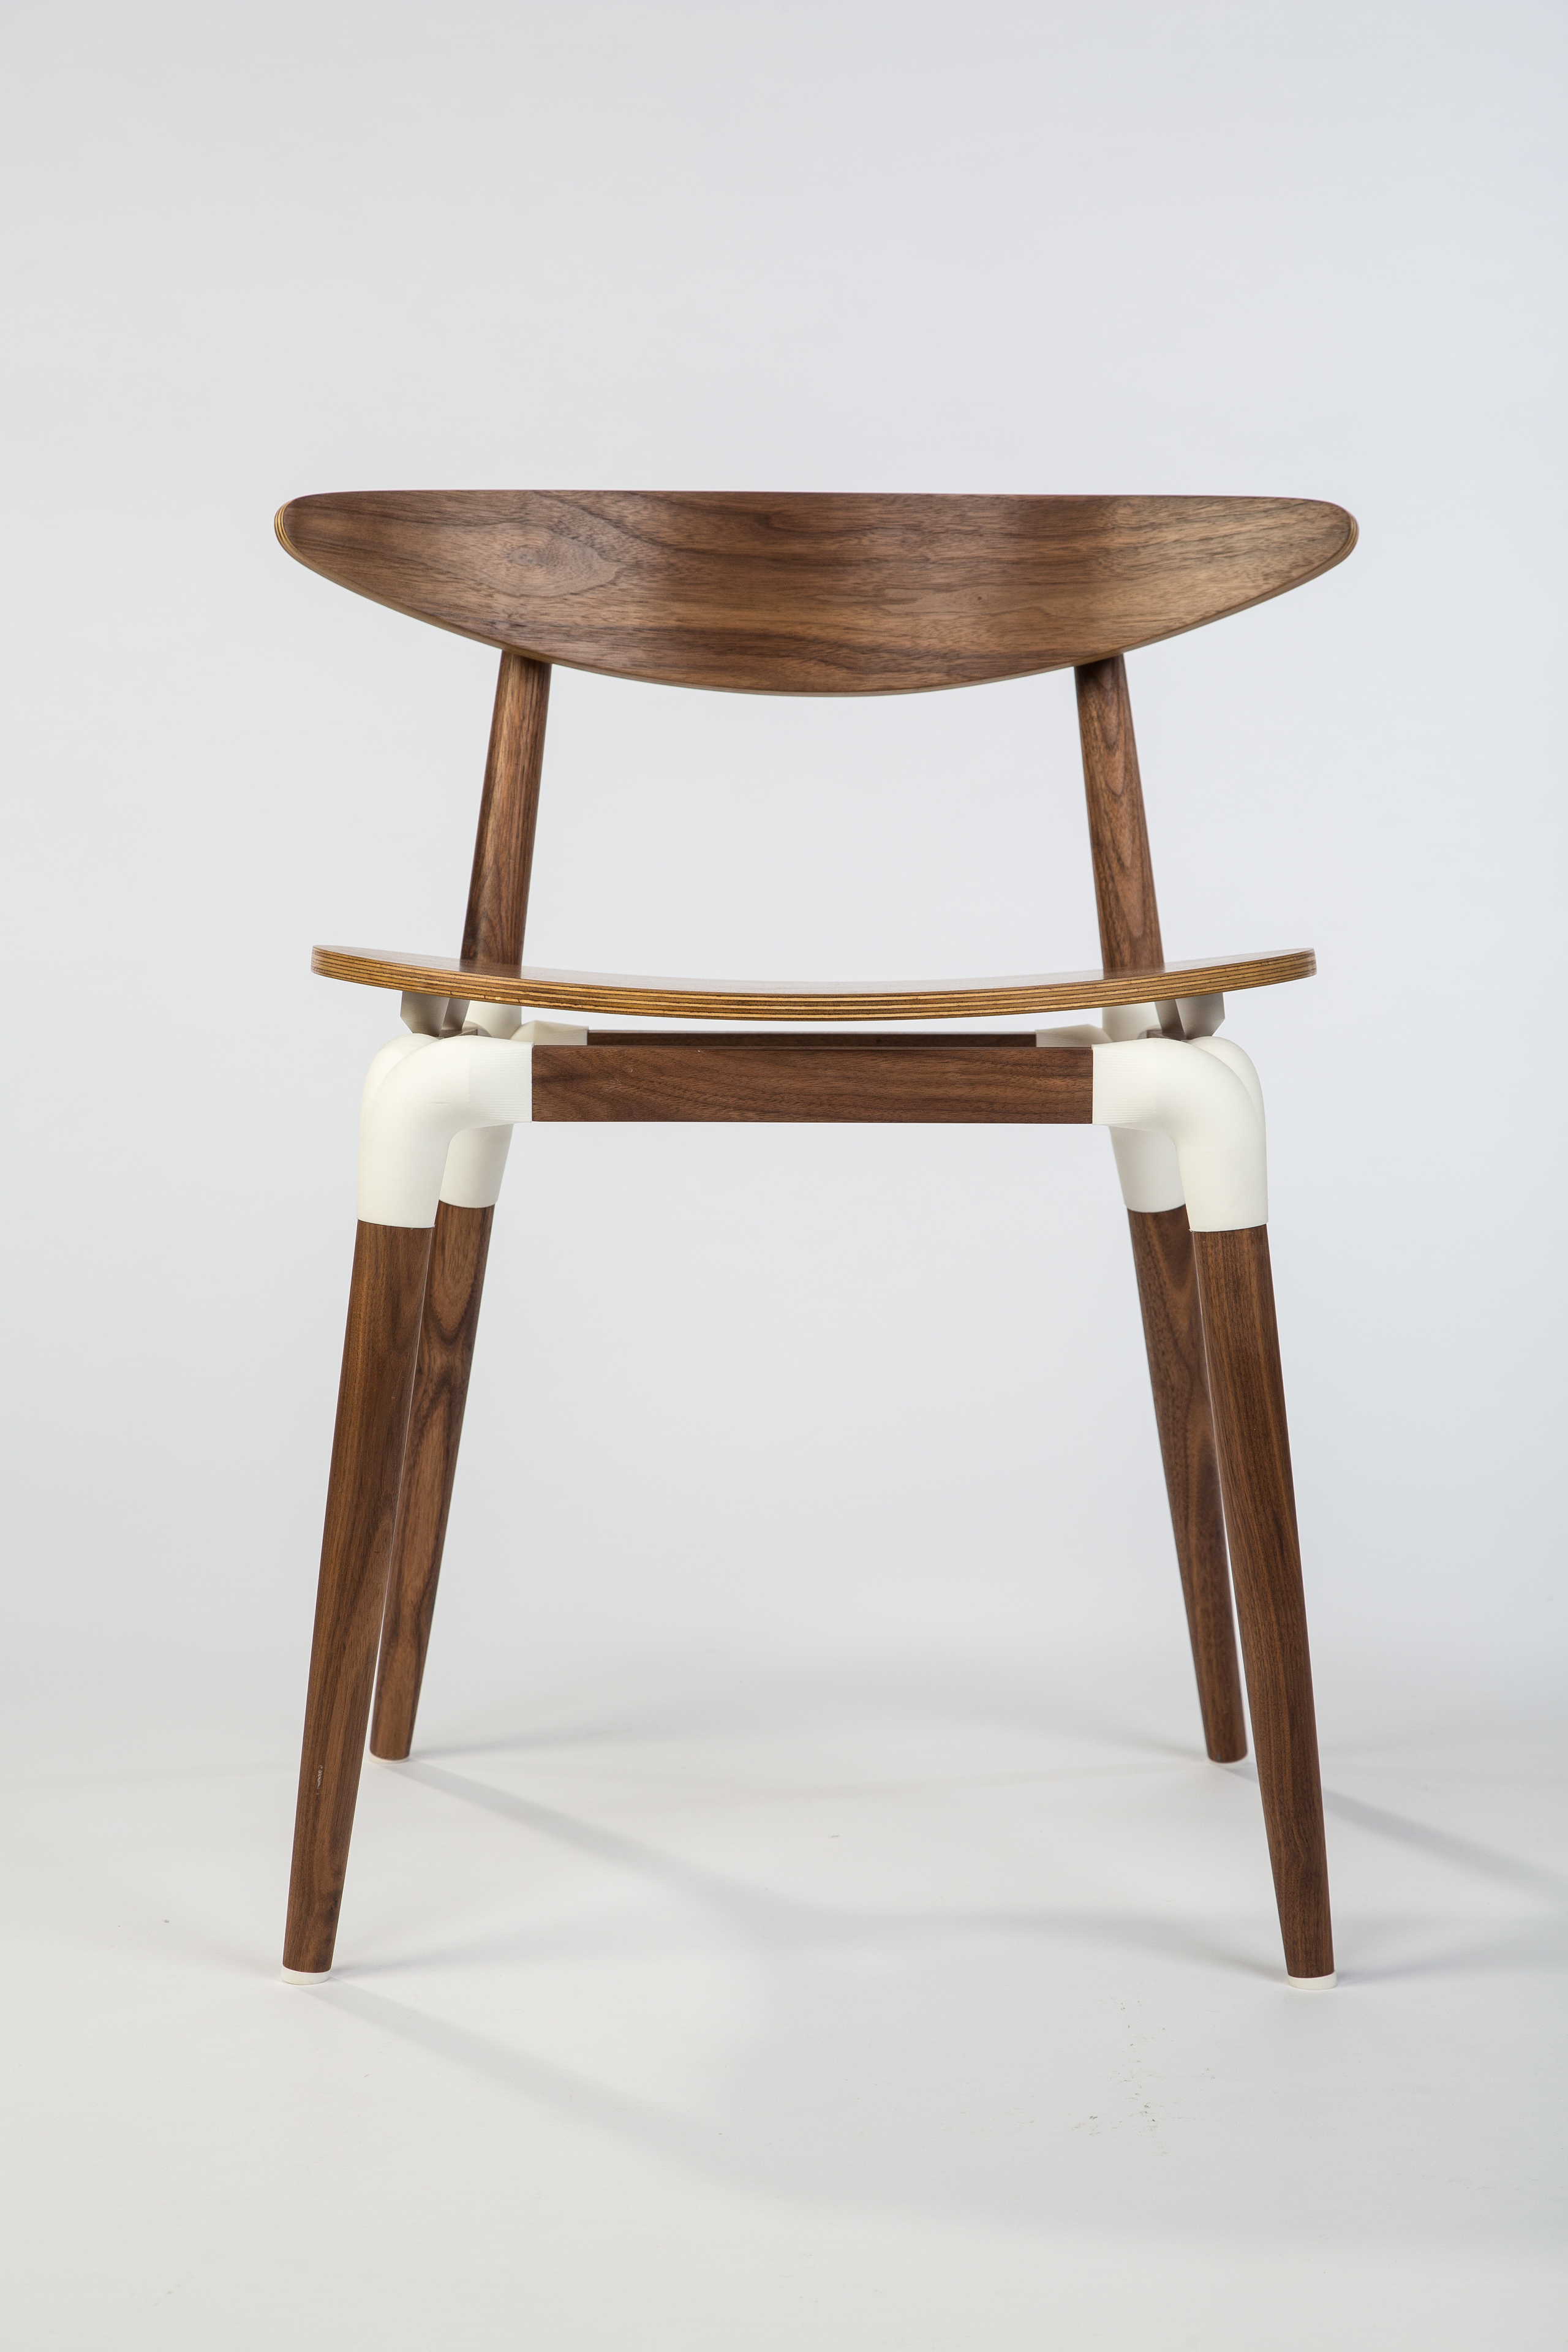 'Saul' chair in natural 3D printed polyamide & walnut